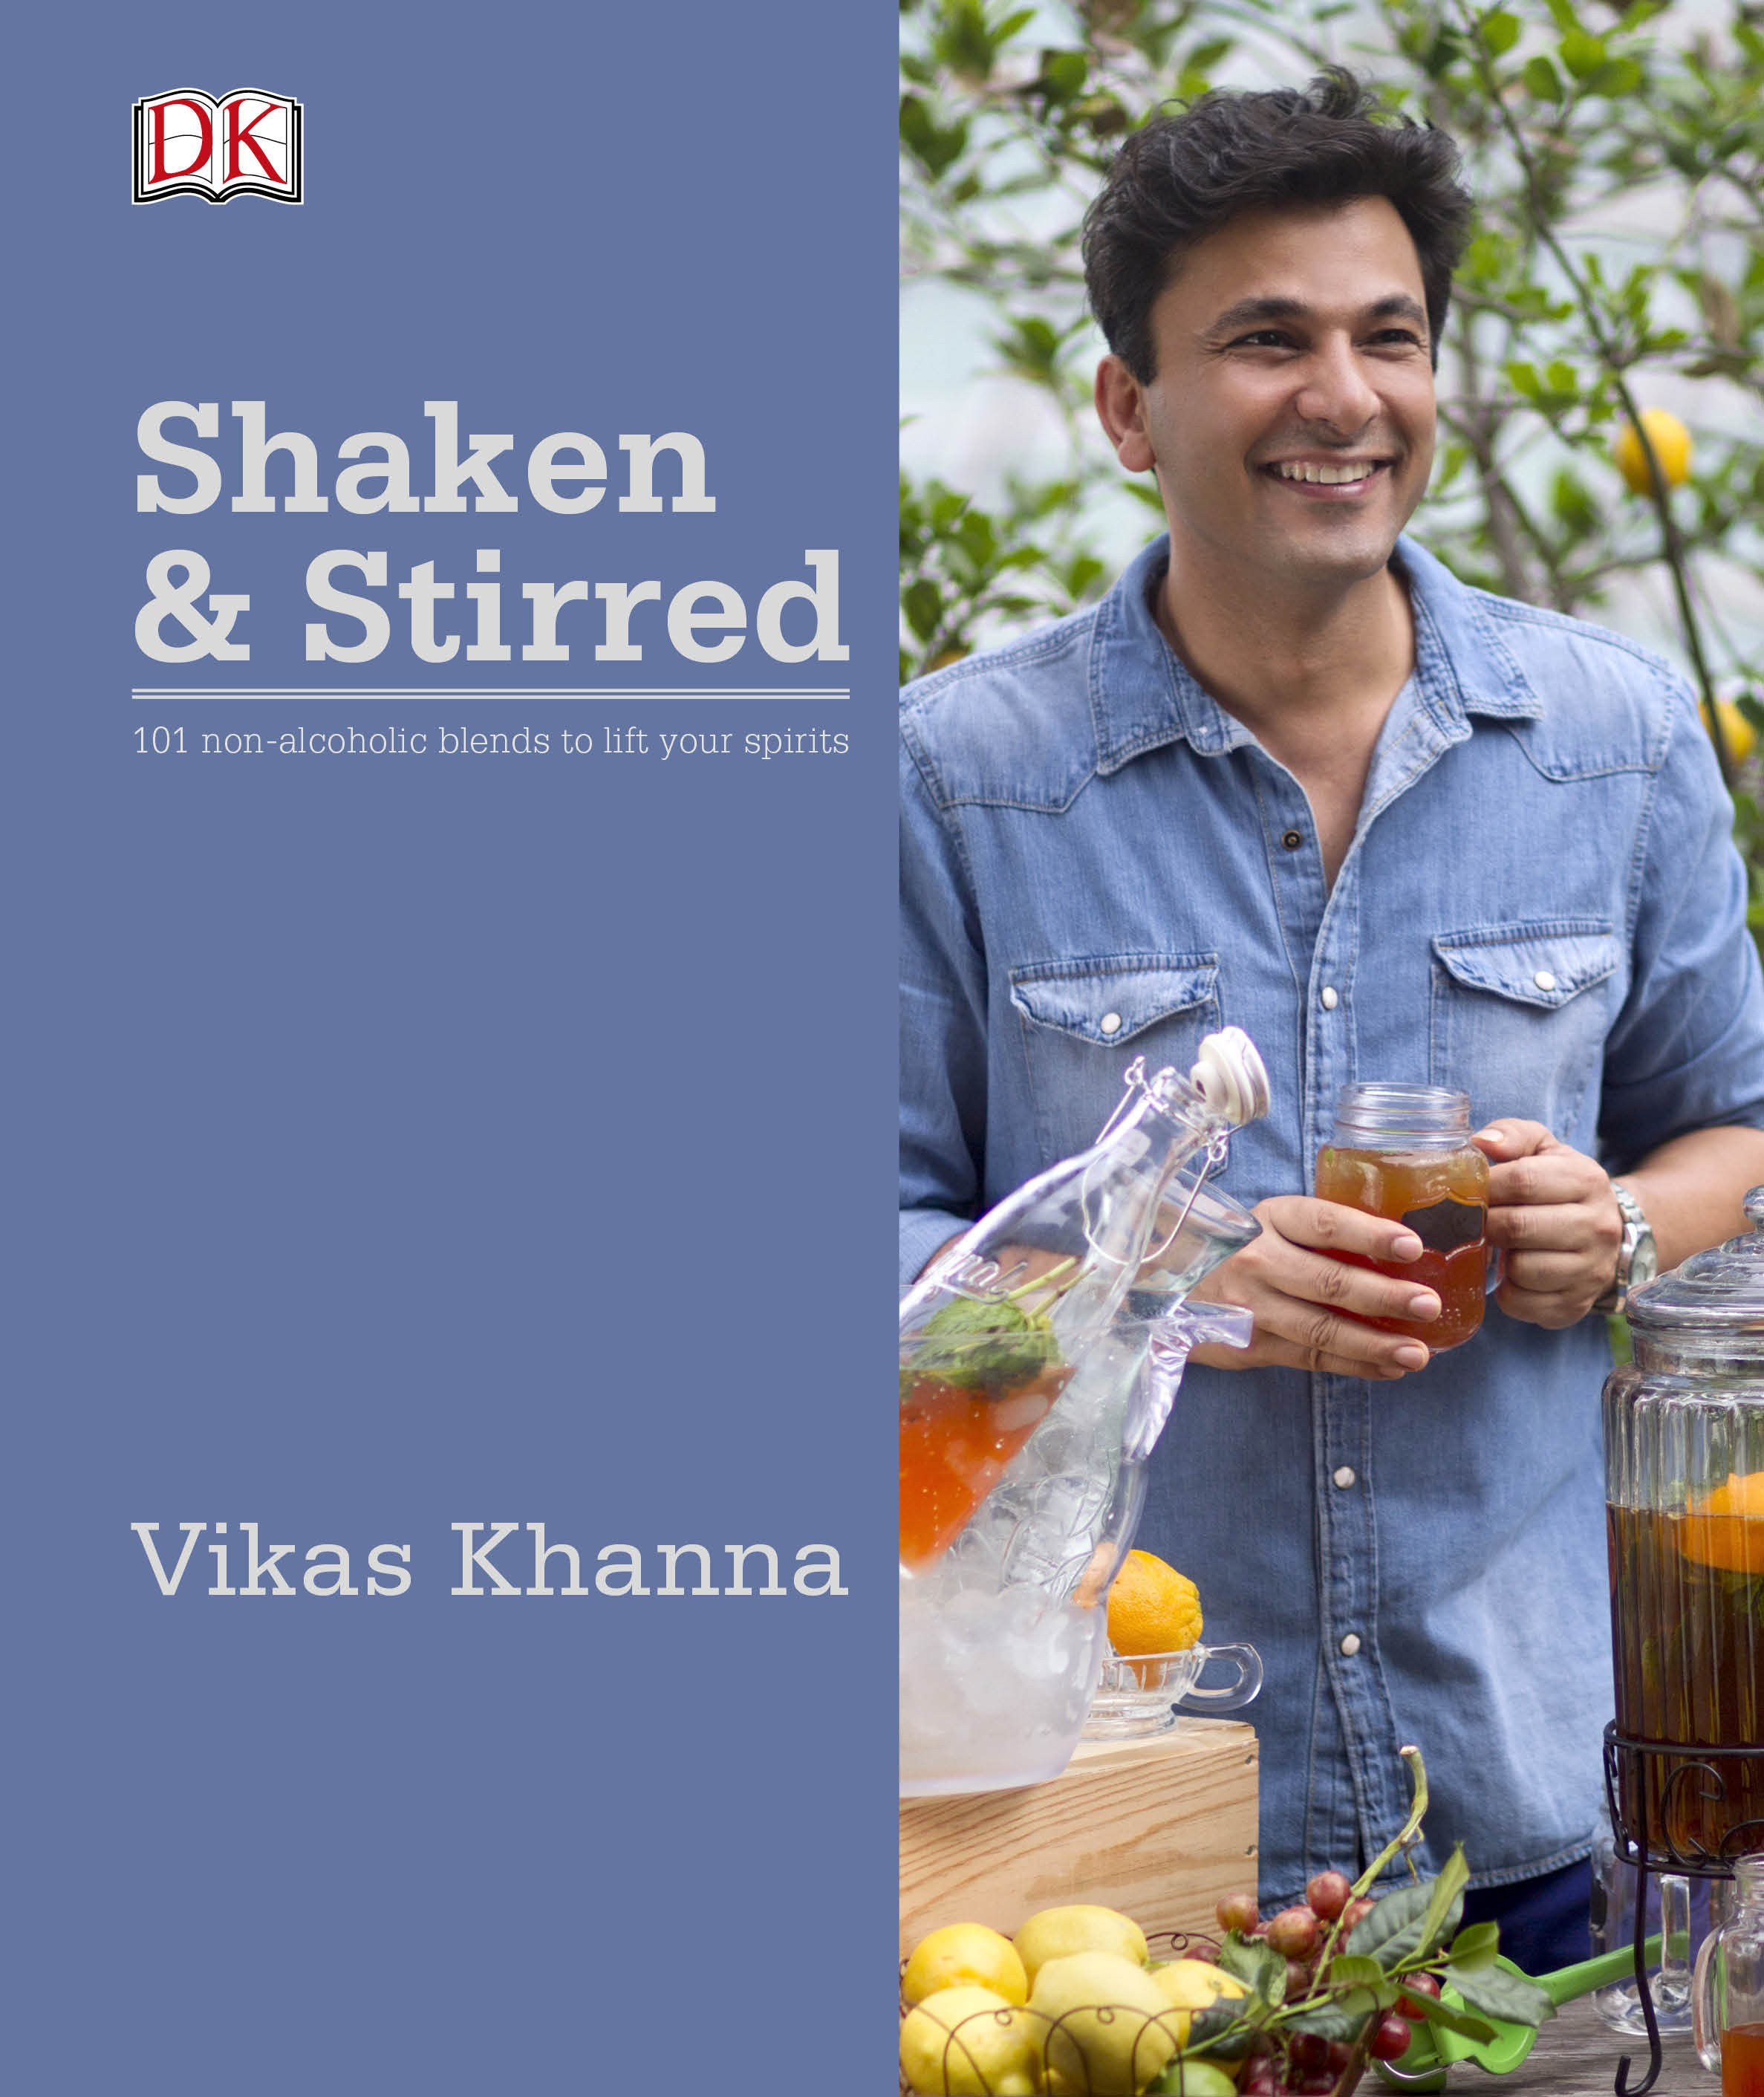 Shaken & Stirred : 101 Non - Alcoholic Blends to Lift Your Spirits (English) price comparison at Flipkart, Amazon, Crossword, Uread, Bookadda, Landmark, Homeshop18